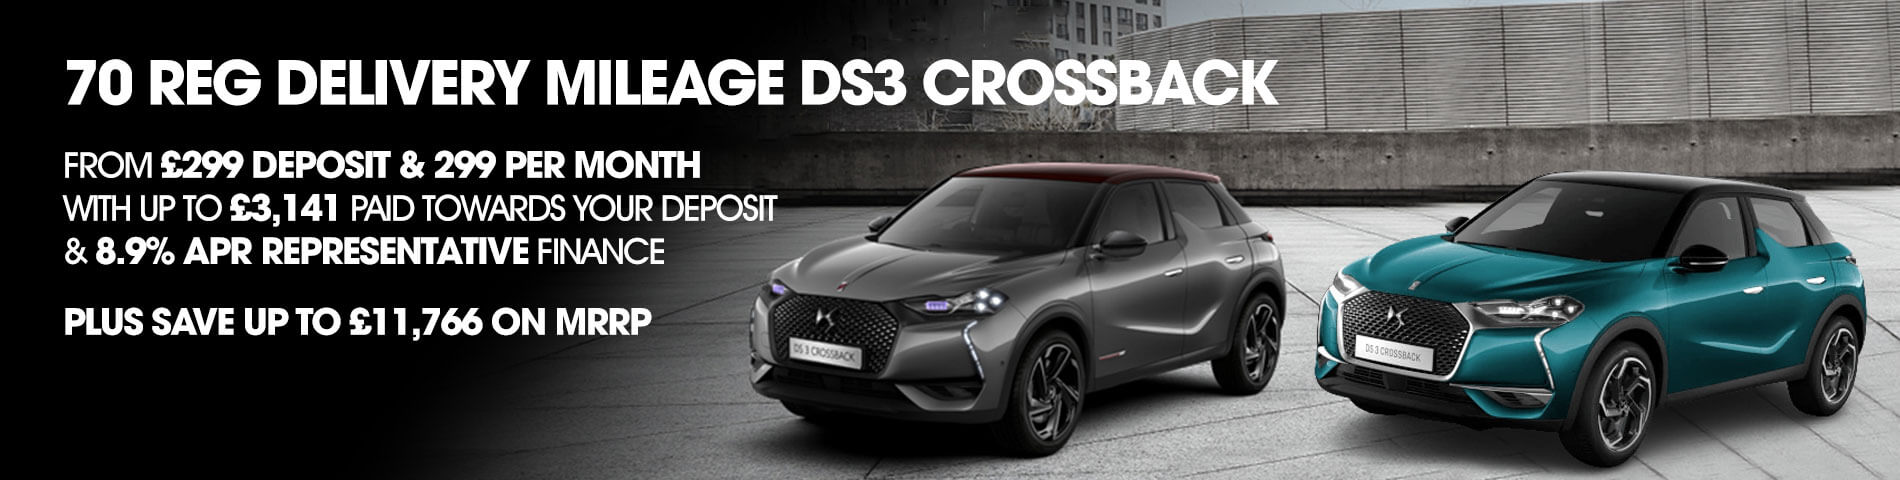 Delivery Mileage DS3 Crossback